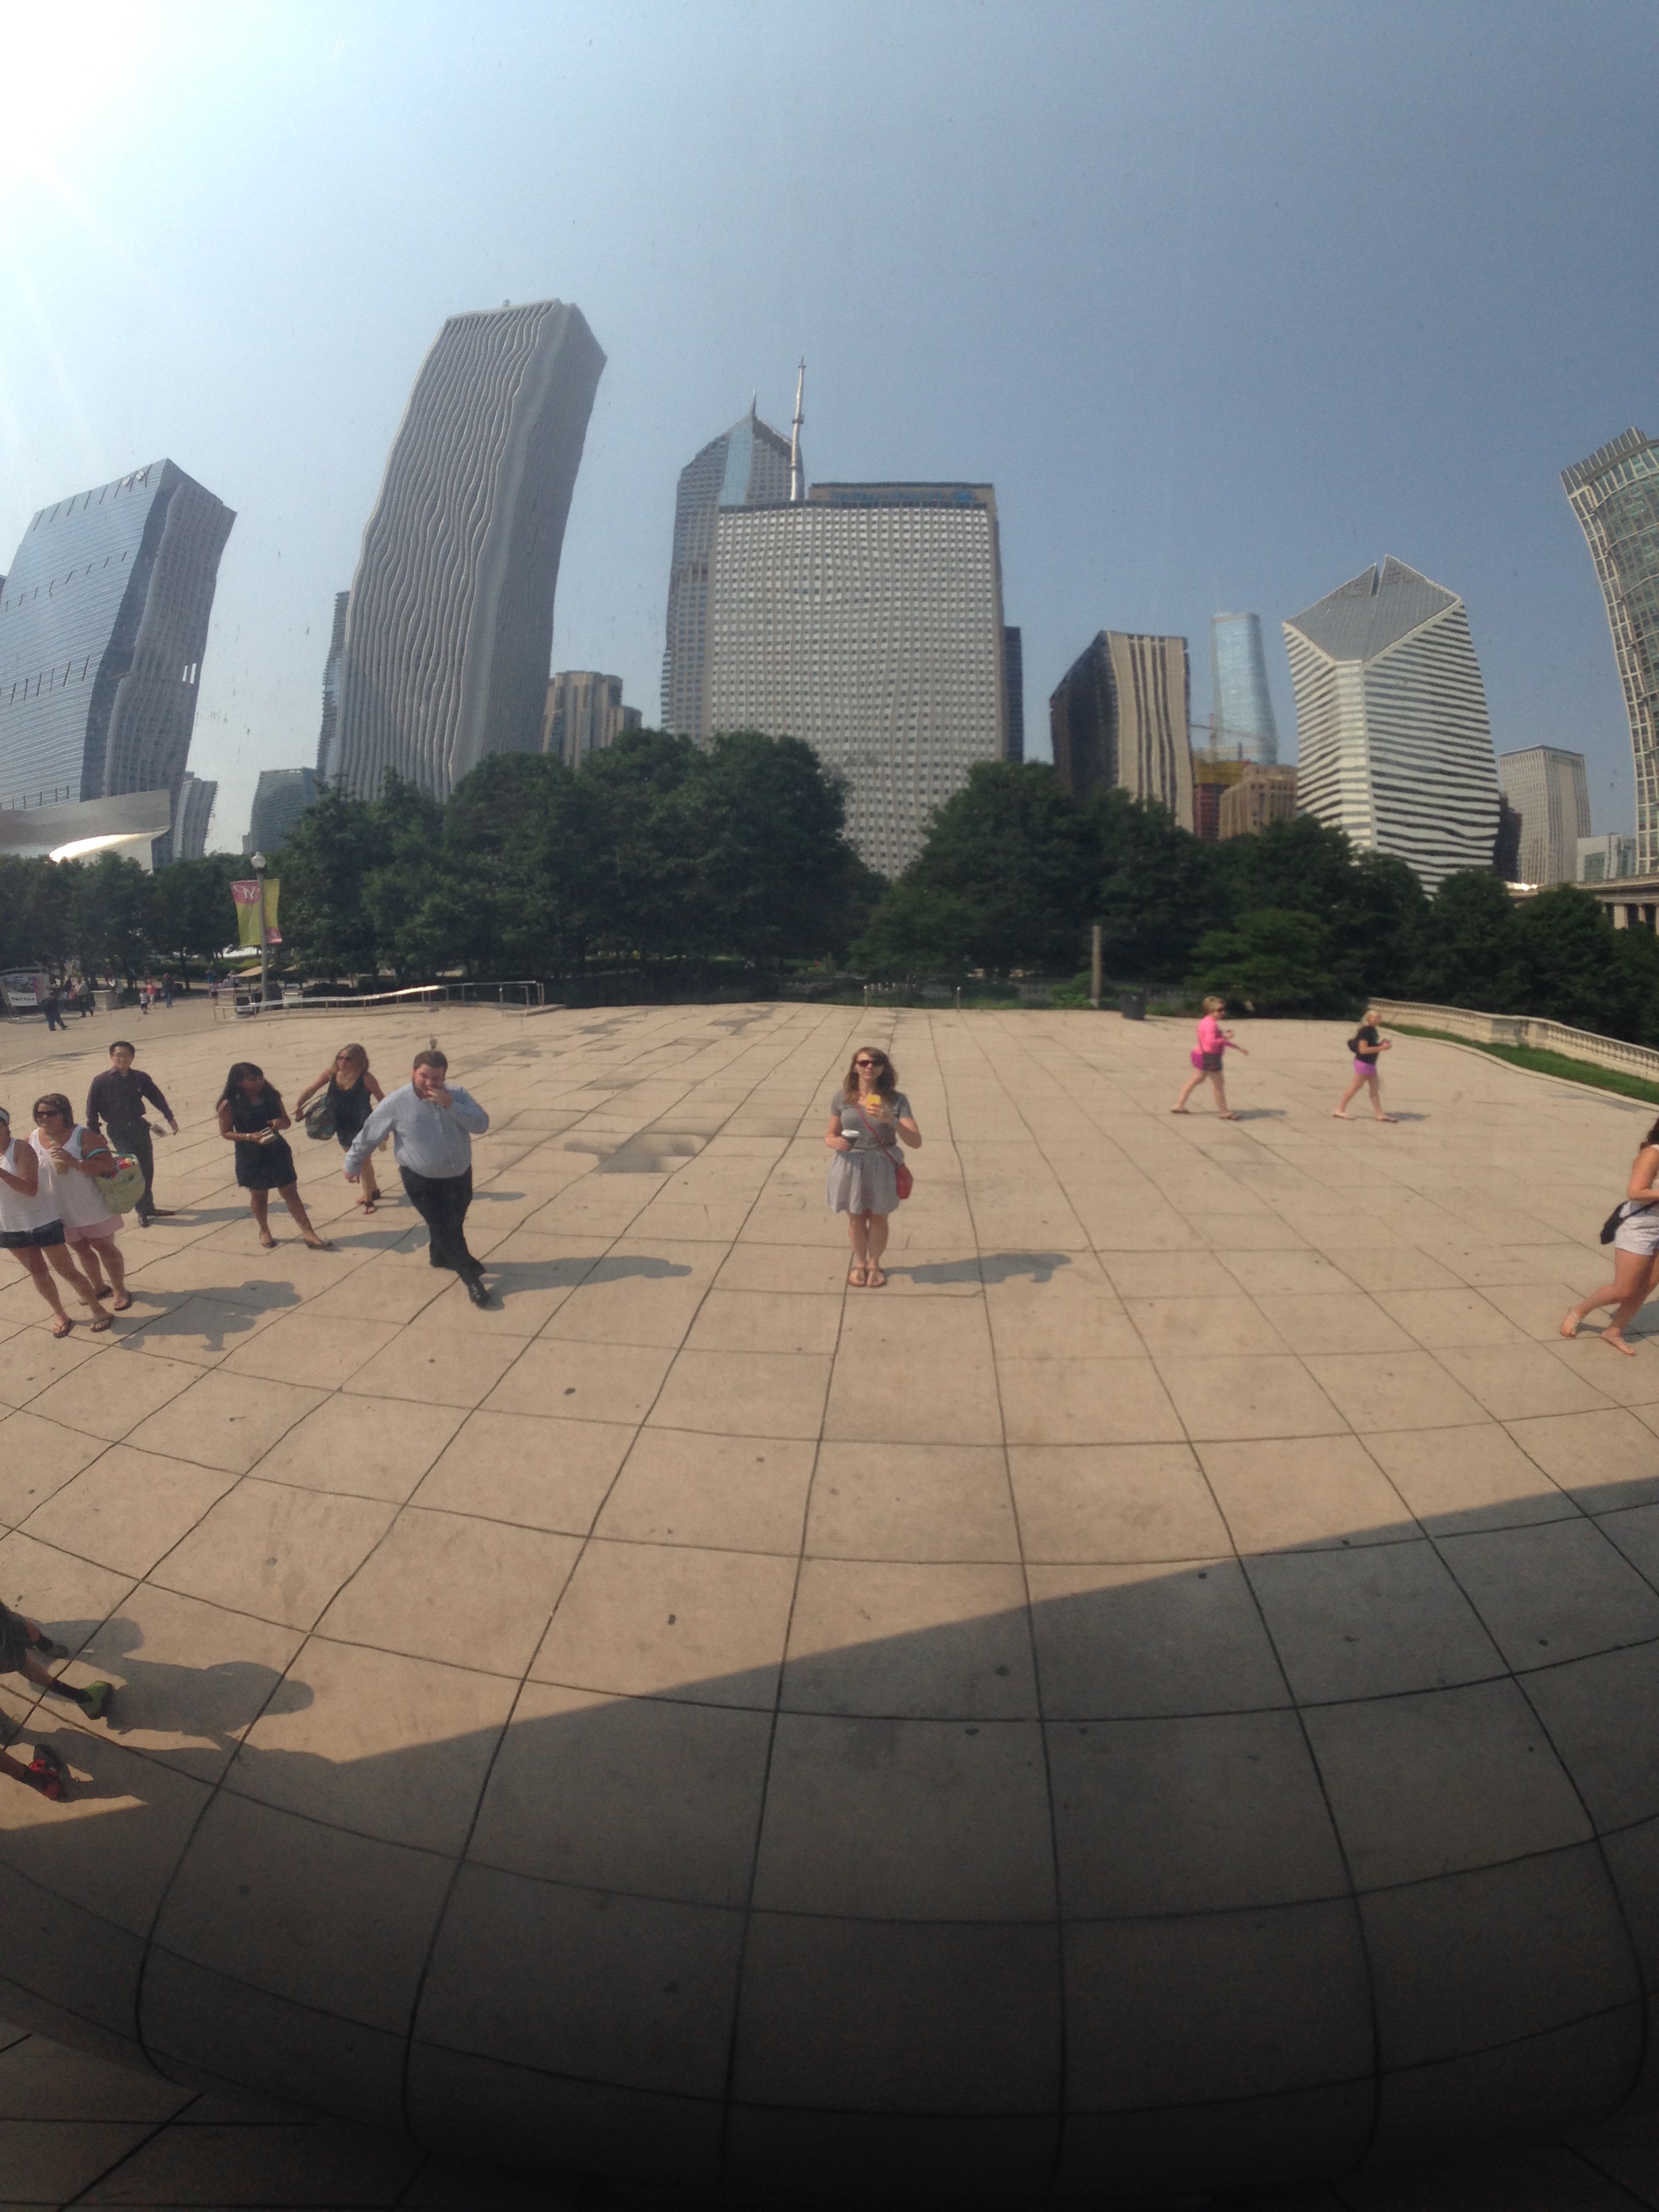 My reflection in the Bean